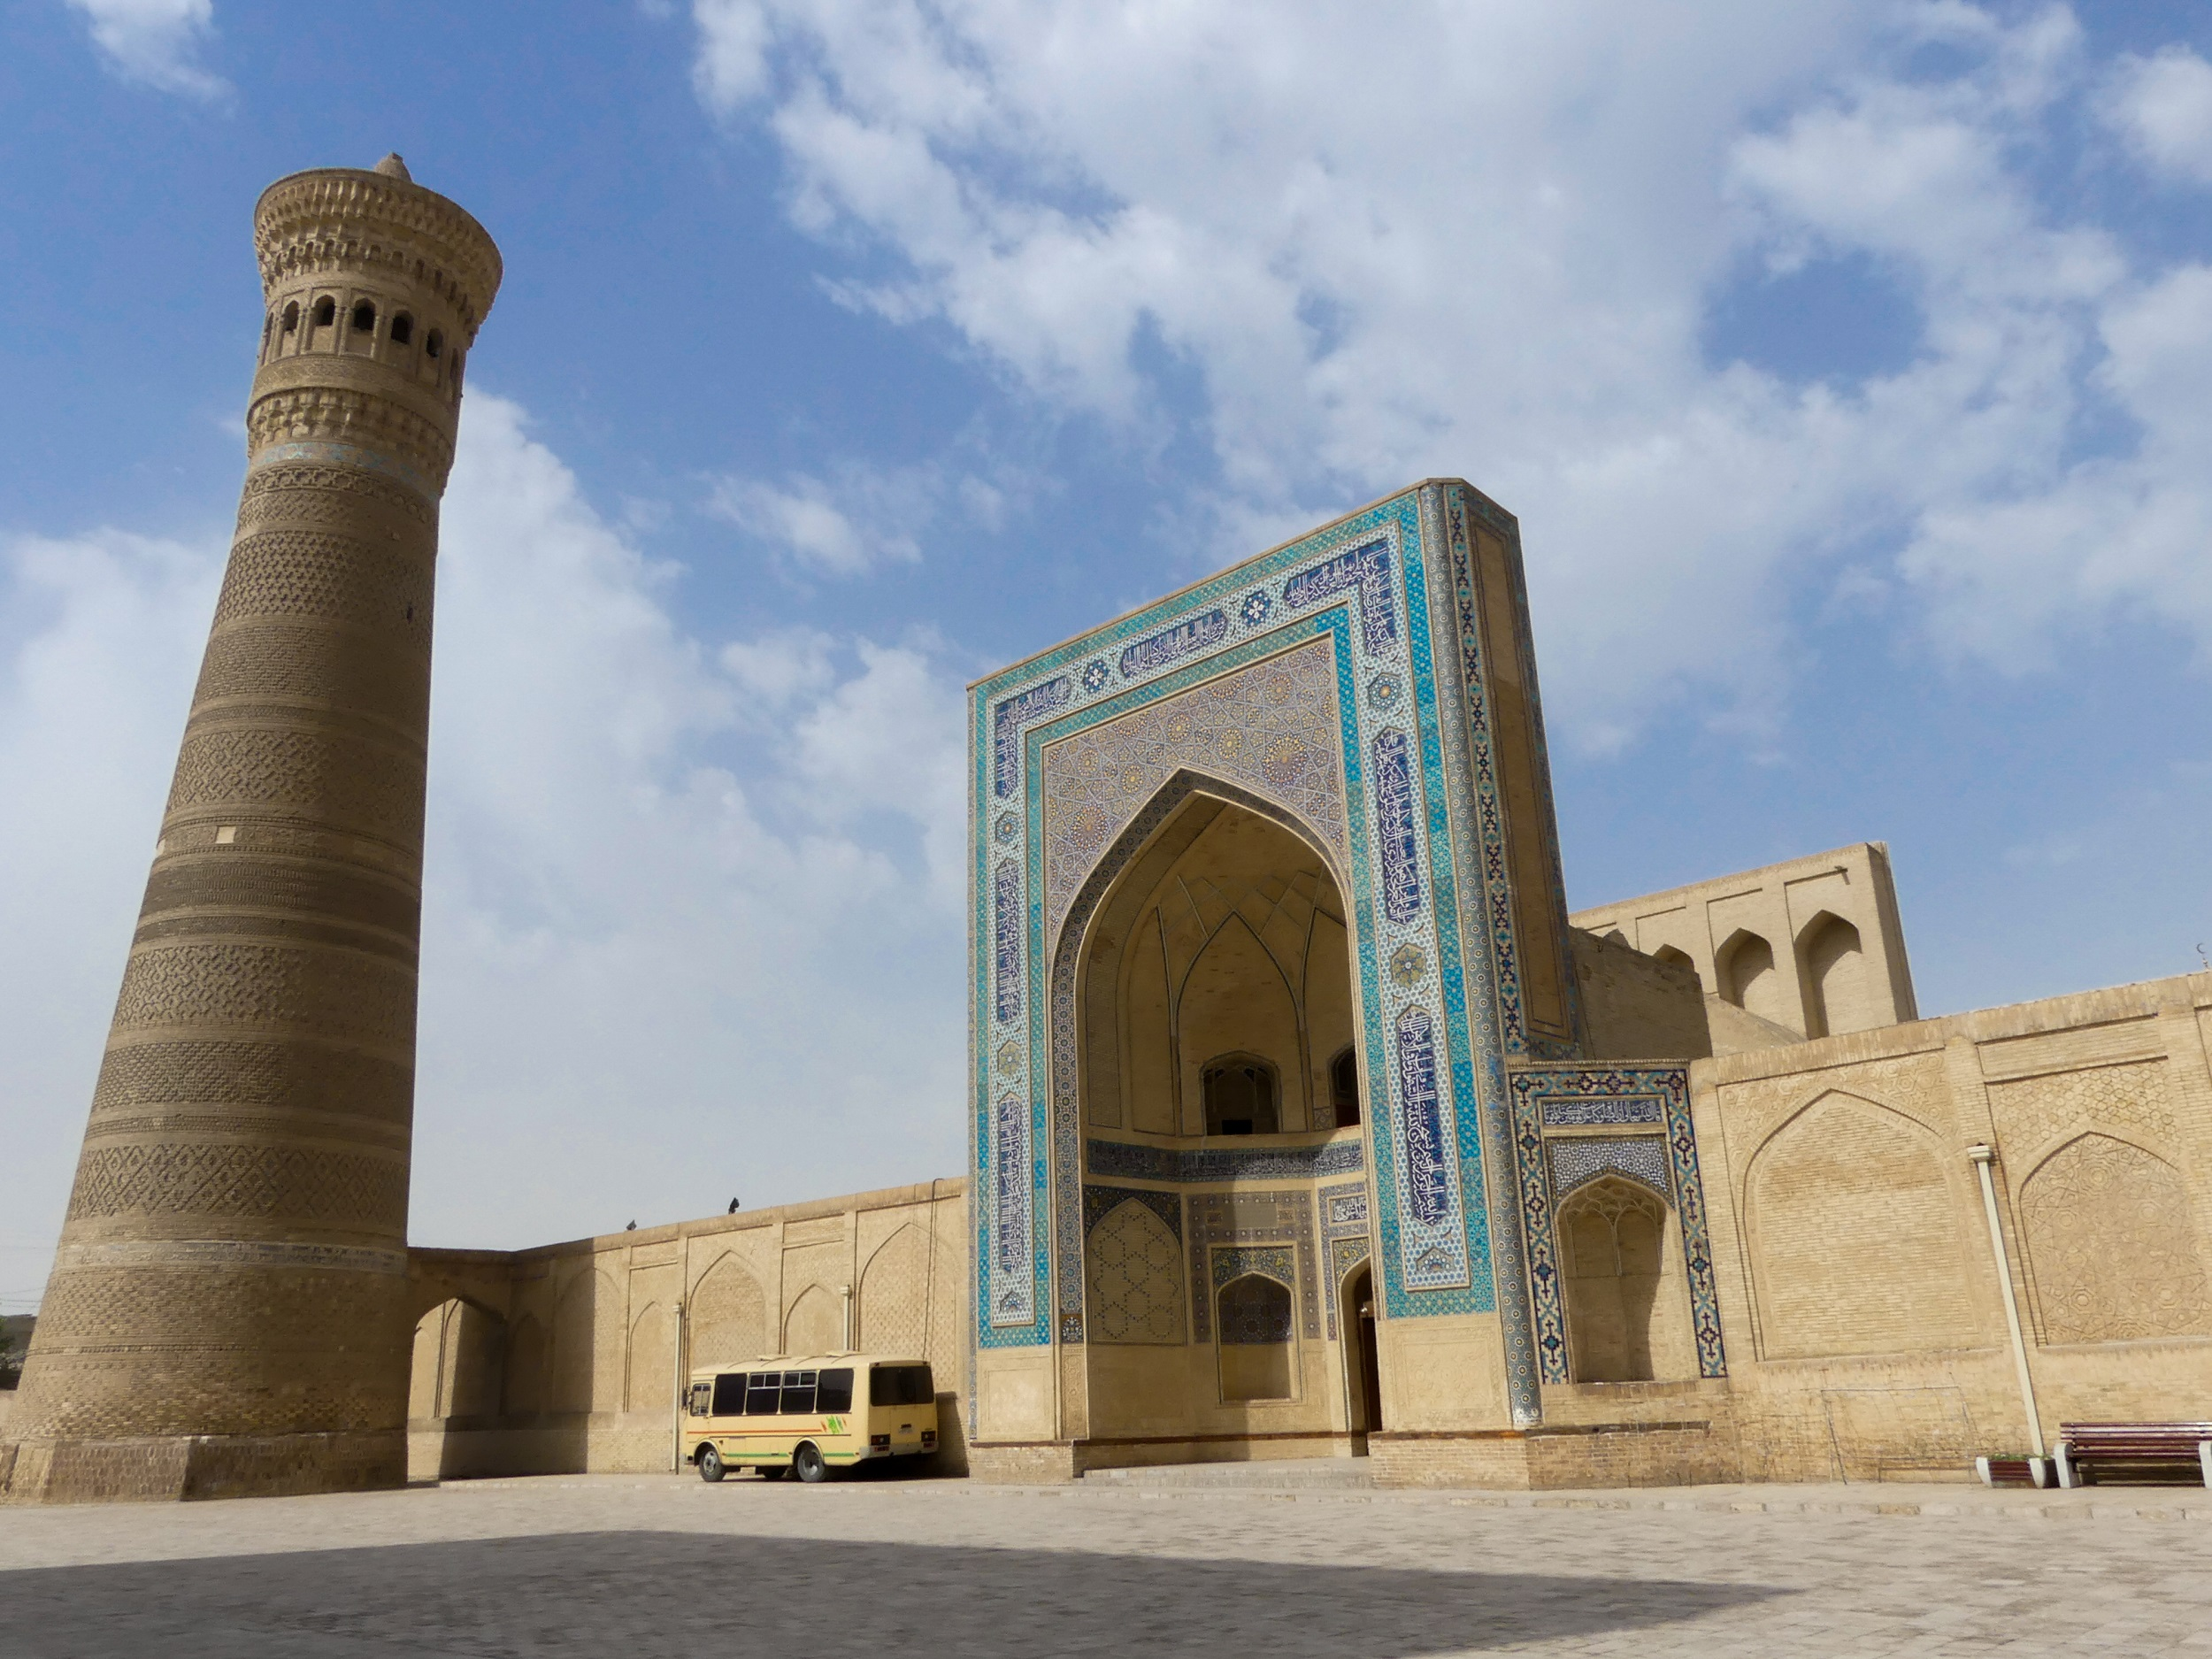 Kalyan minaret and mosque in Bukhara, Uzbekistan